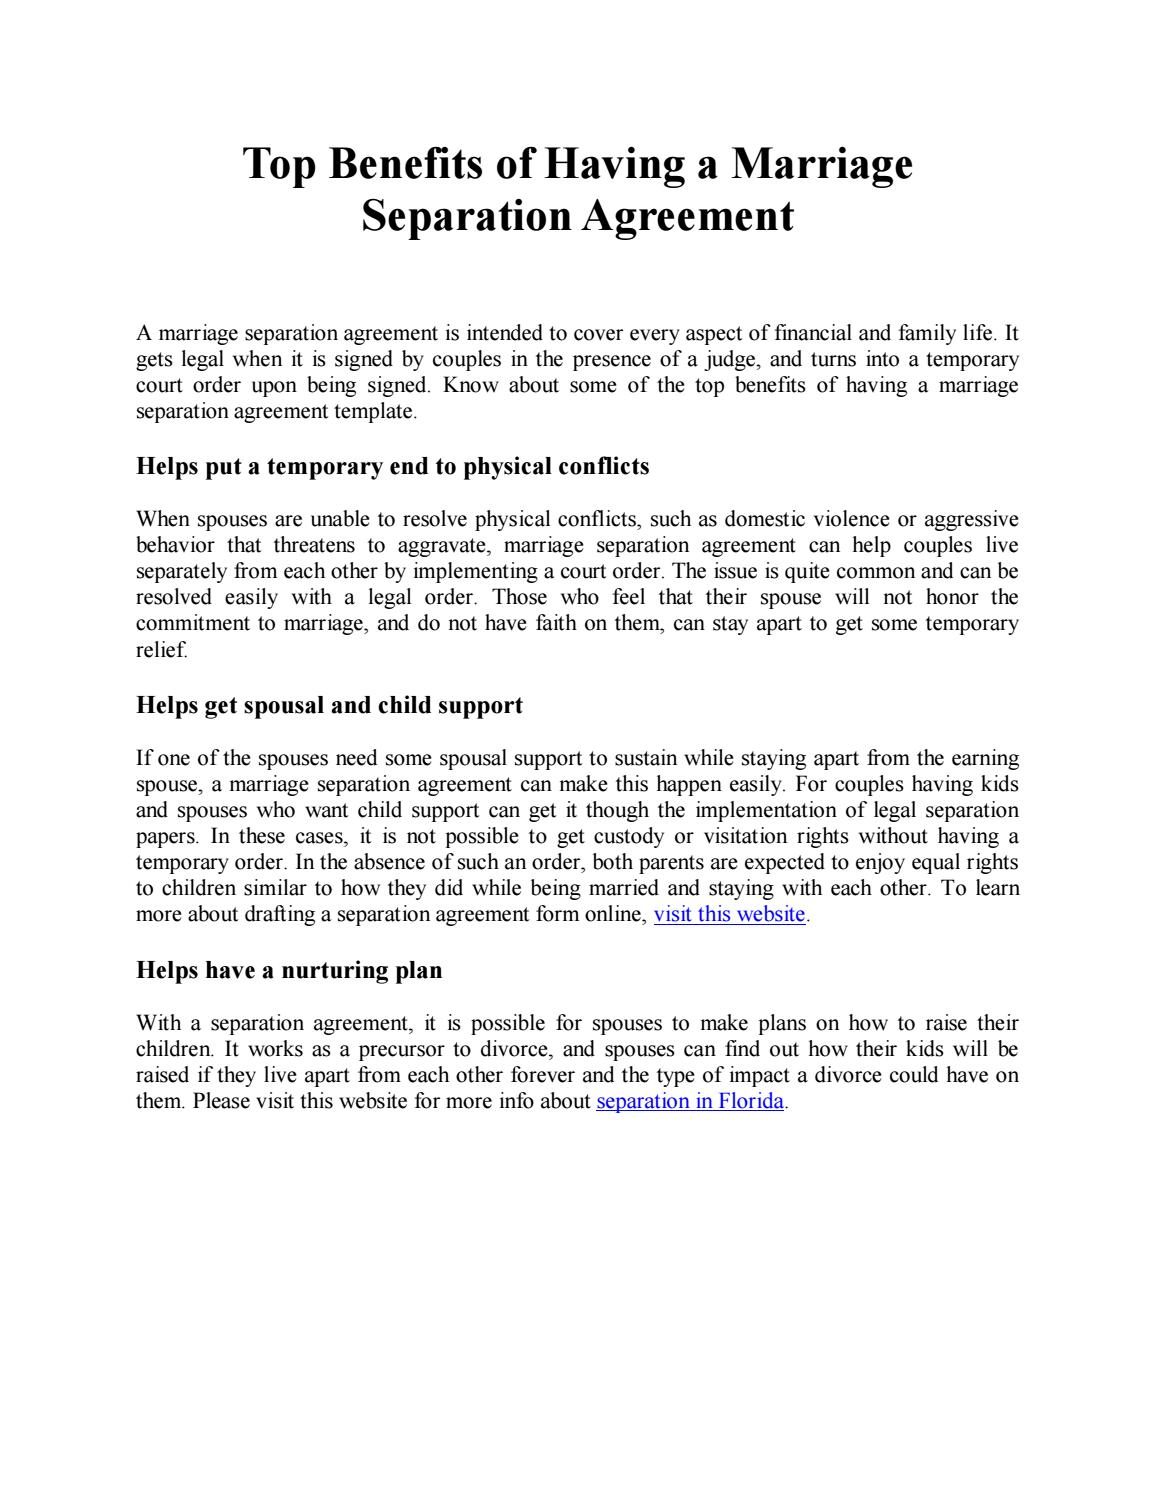 Top Benefits Of Having A Marriage Separation Agreement By